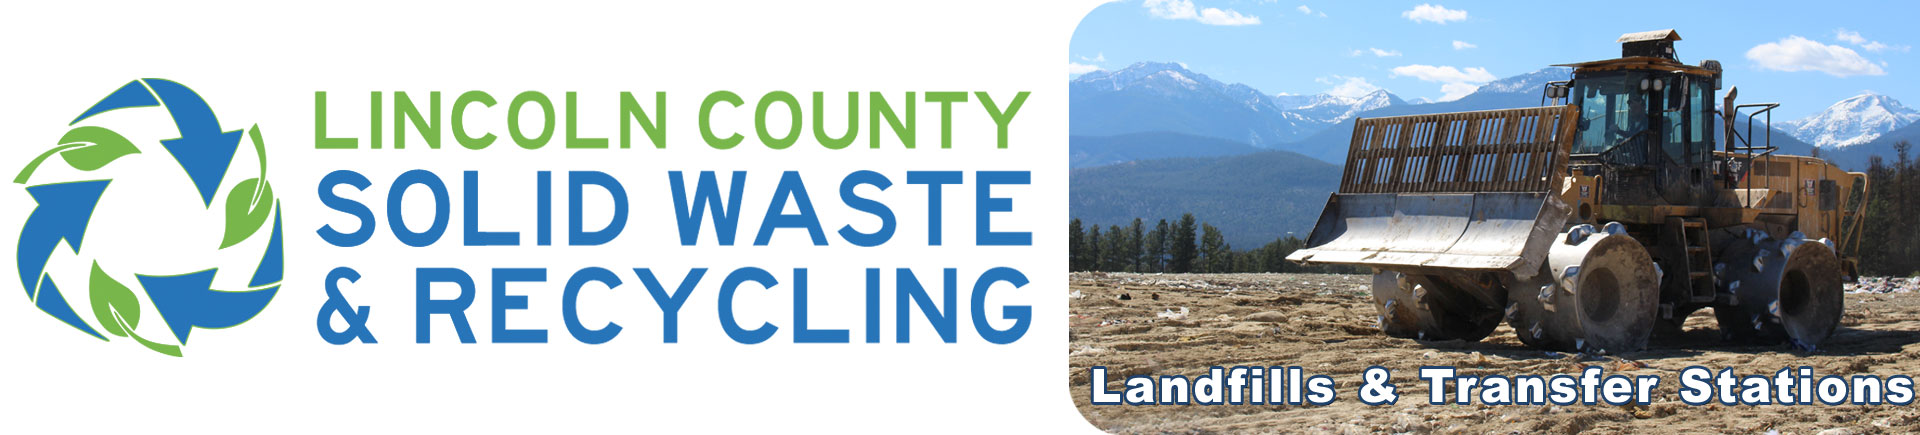 Waste - Lincoln County Montana Landfills Solid